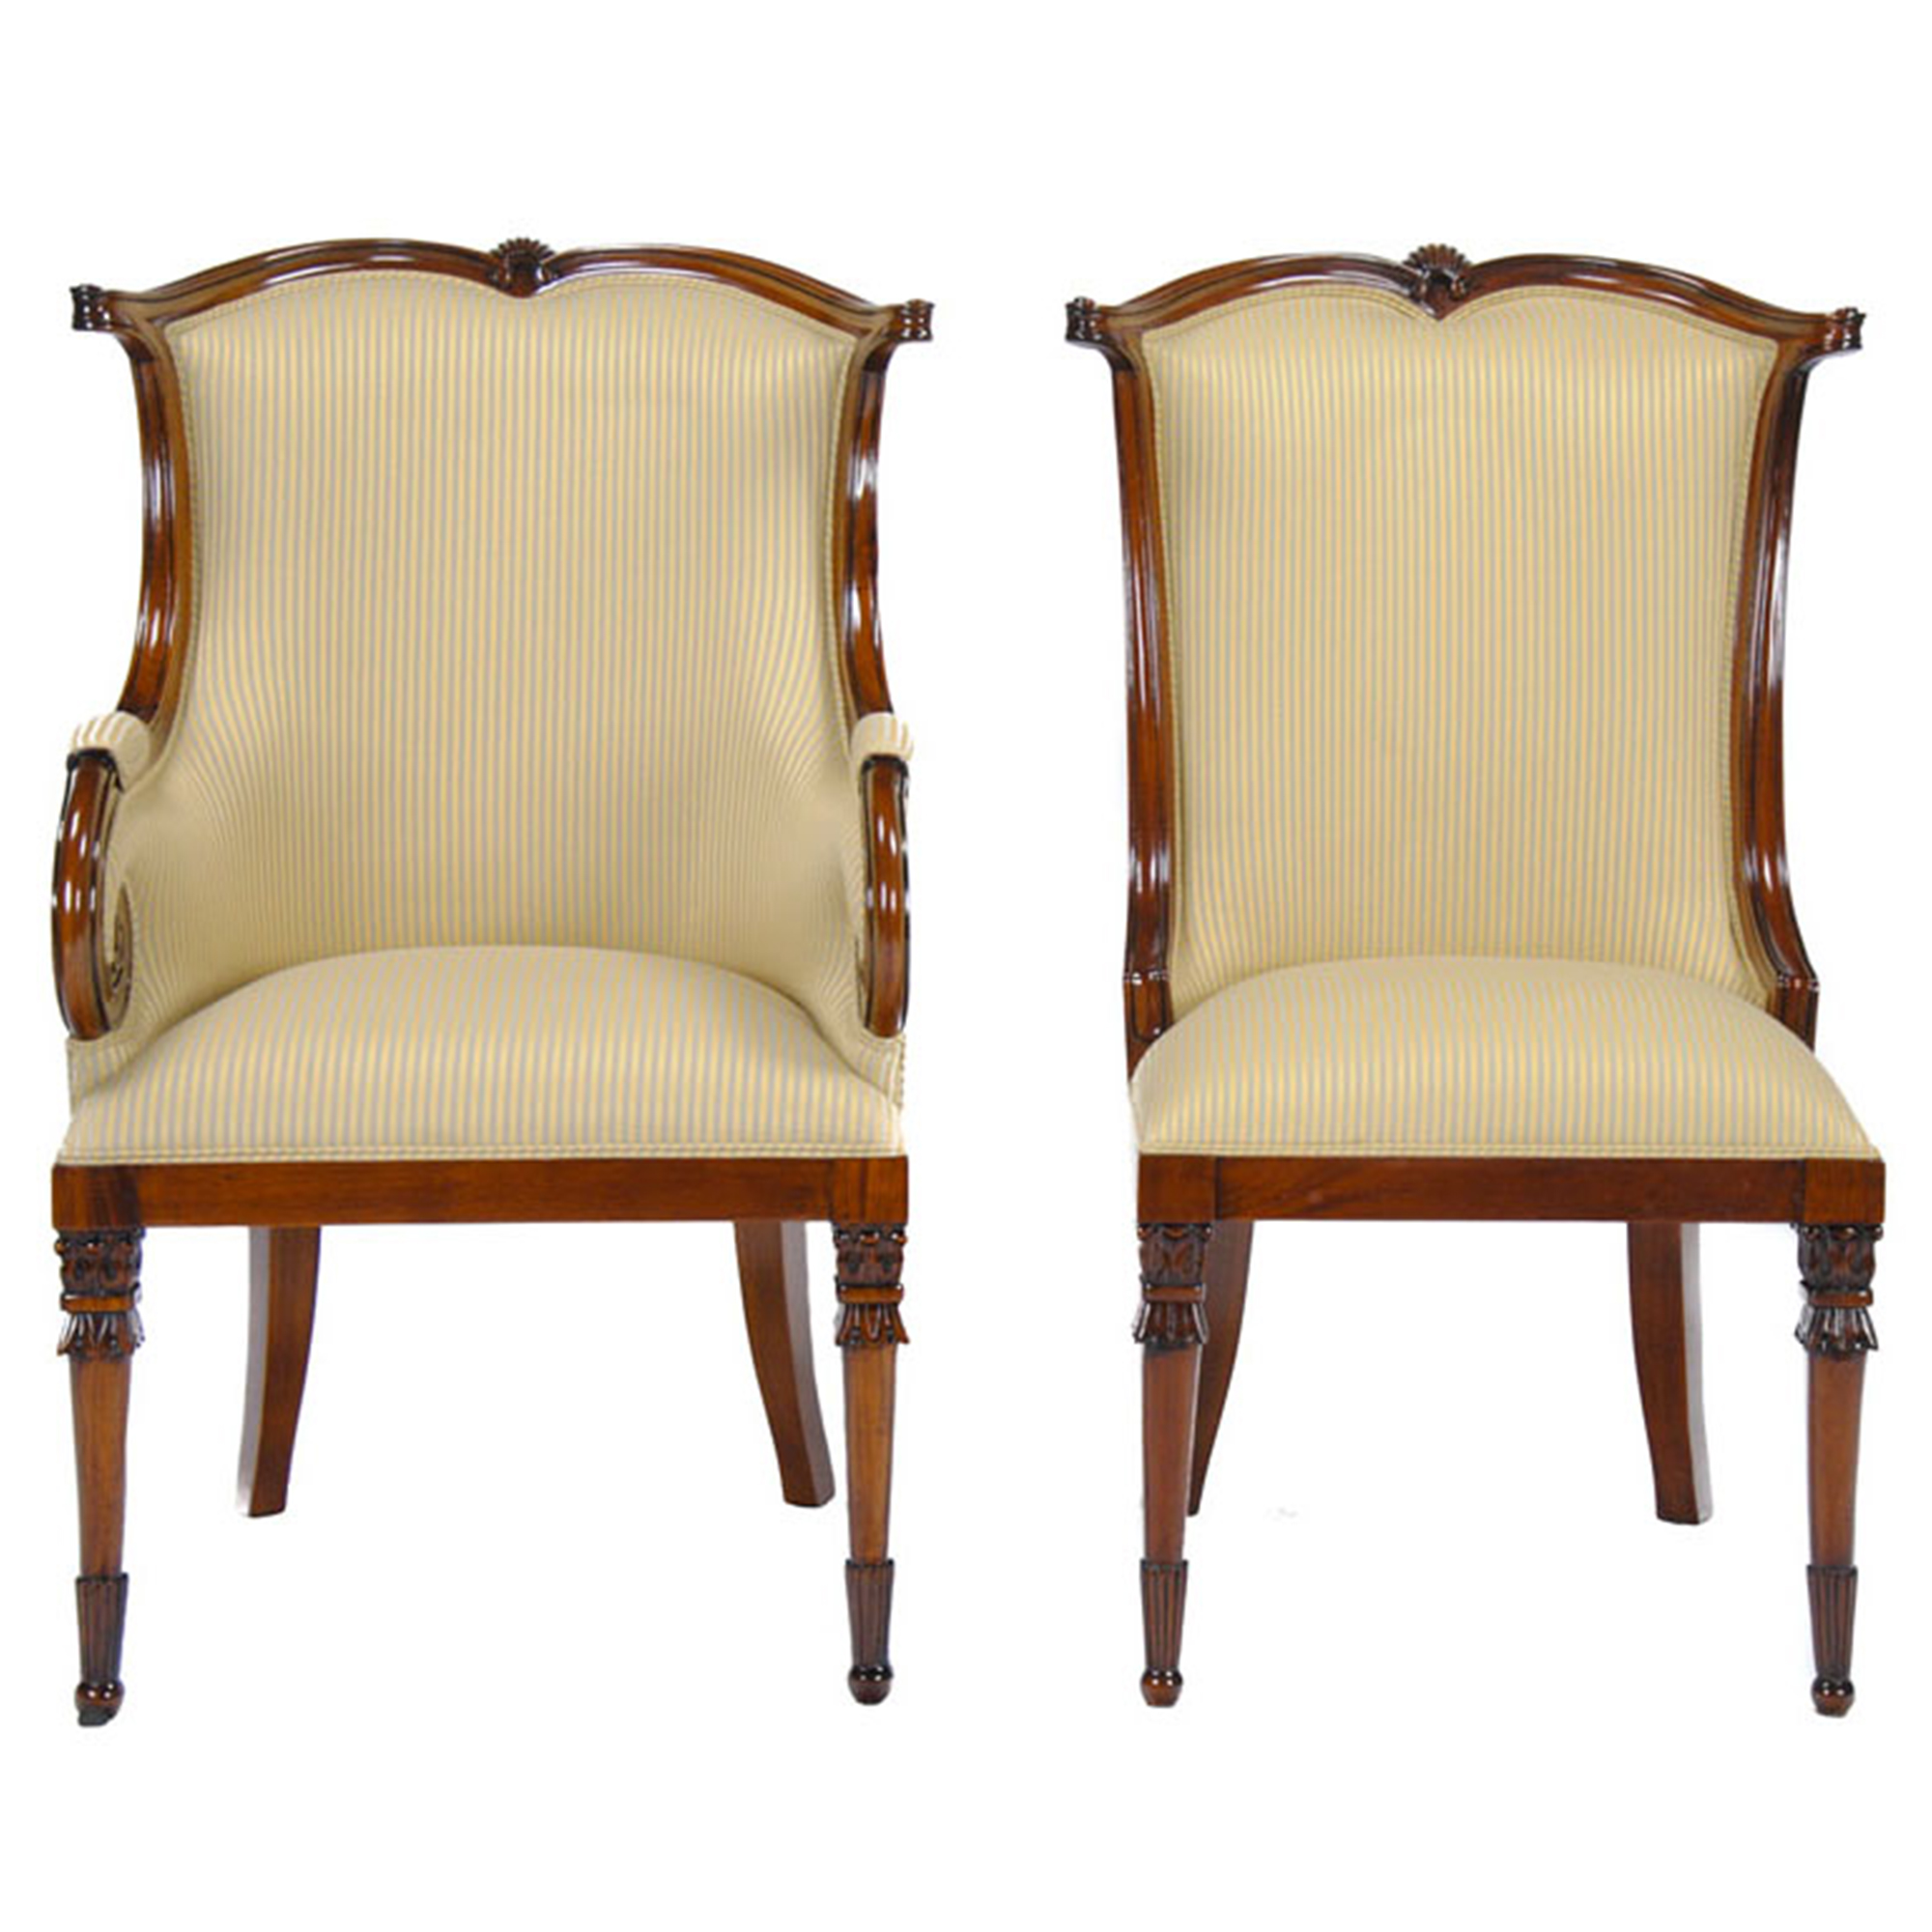 Upholstered Dining Room Chairs American Upholstered Dining Chairs Set Of 10 Niagara